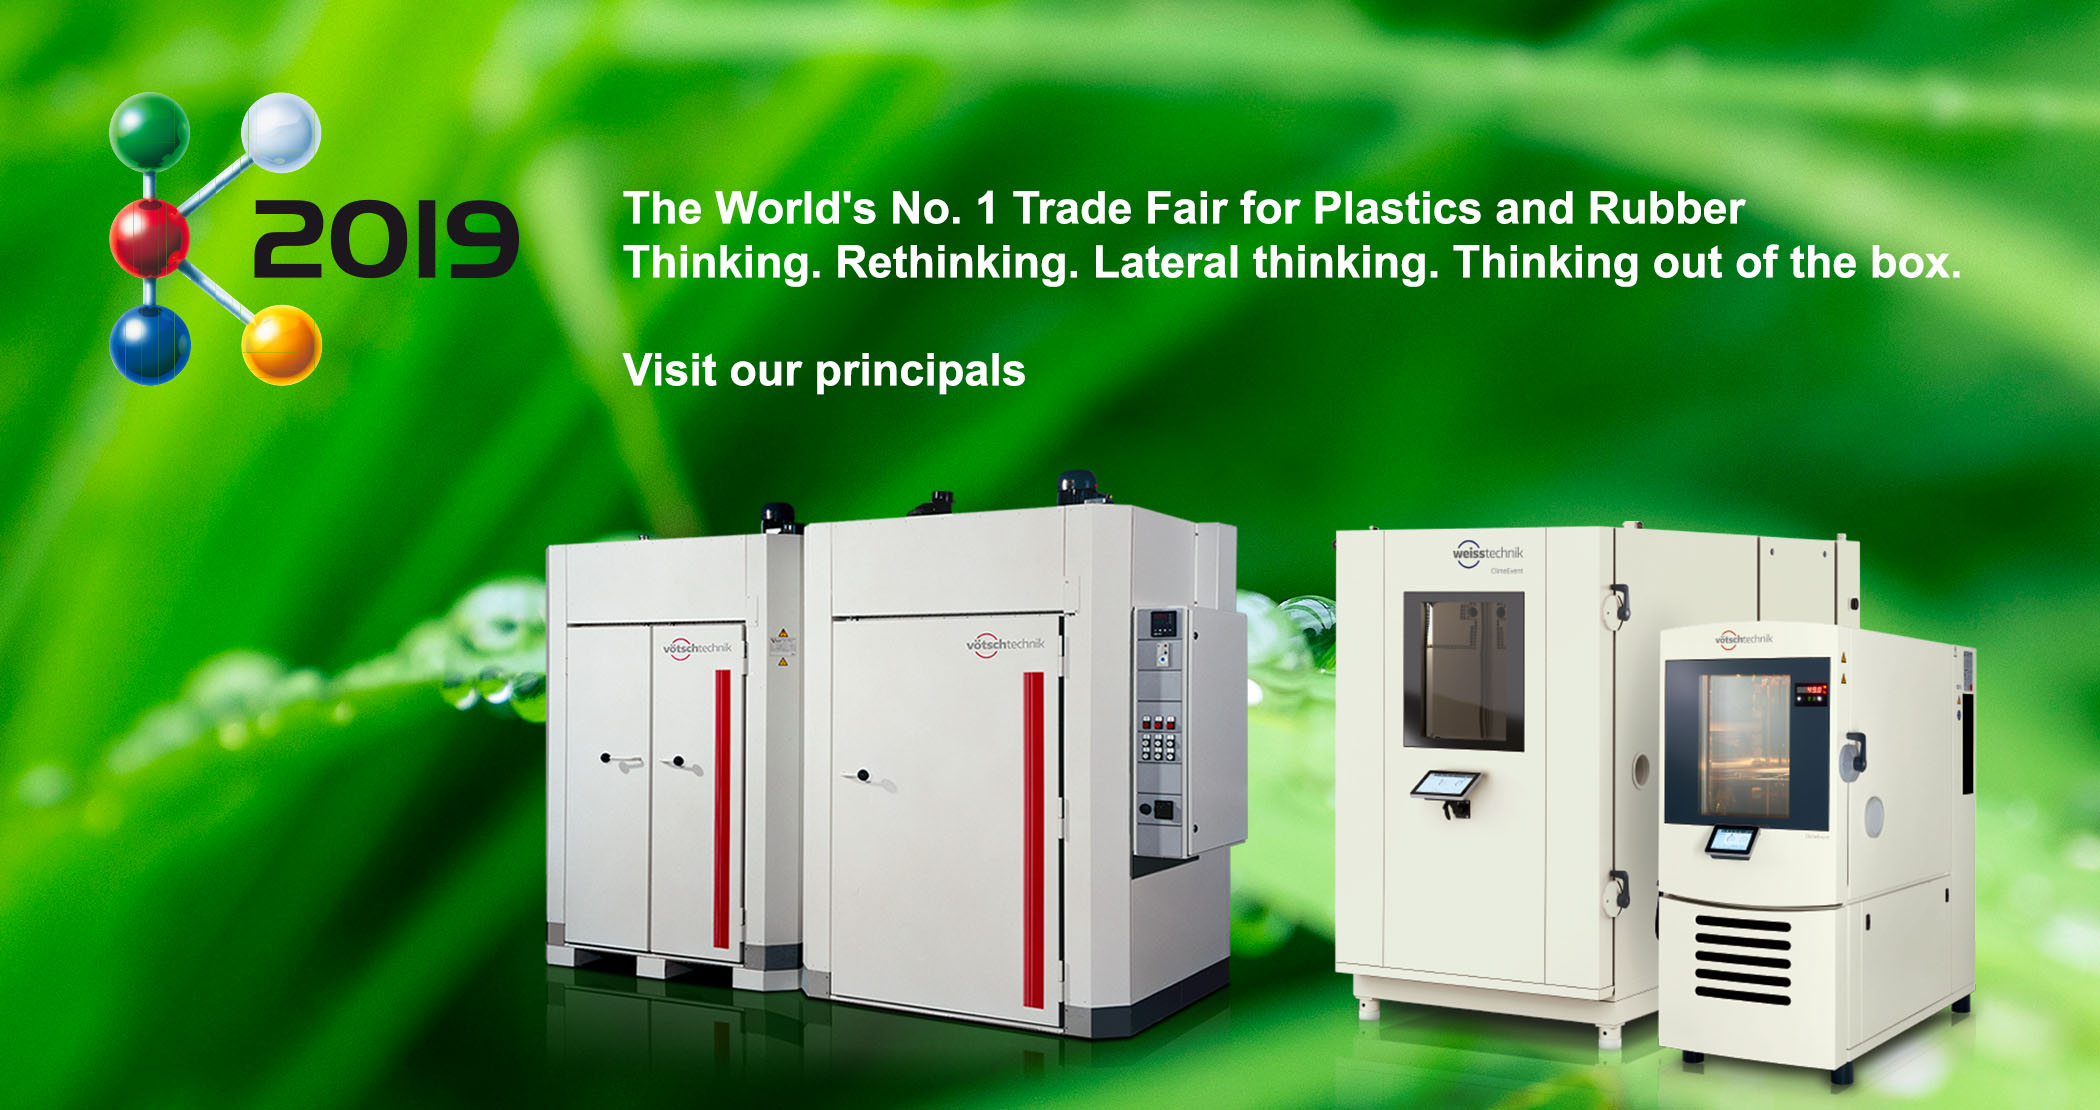 K 2019 Trade Fair for Plastics and Rubber